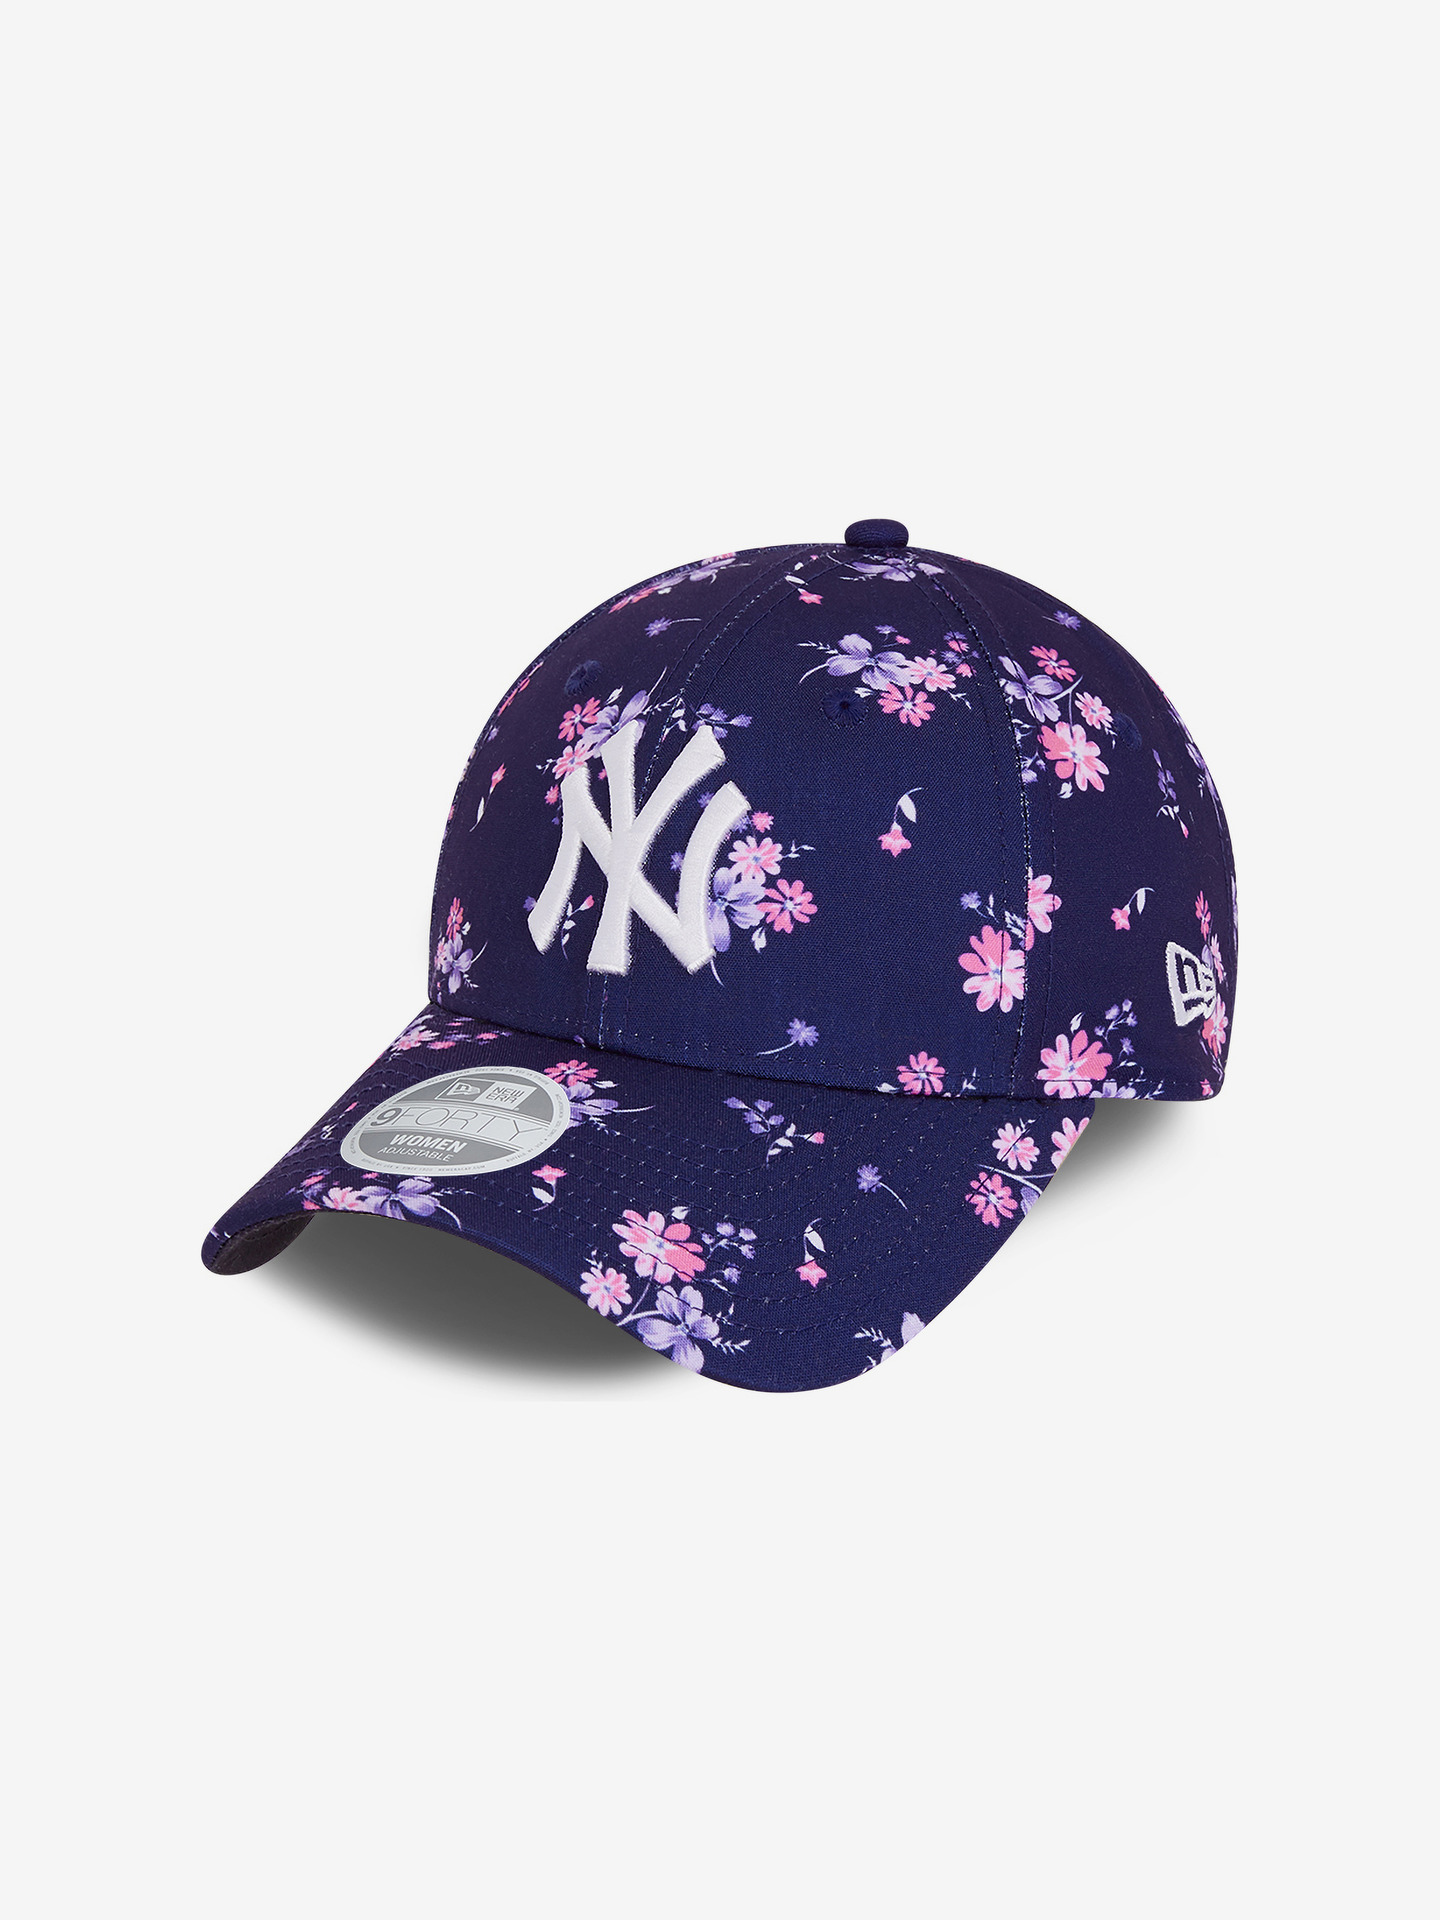 940W MLB New York Yankees Kšiltovka New Era Fialová